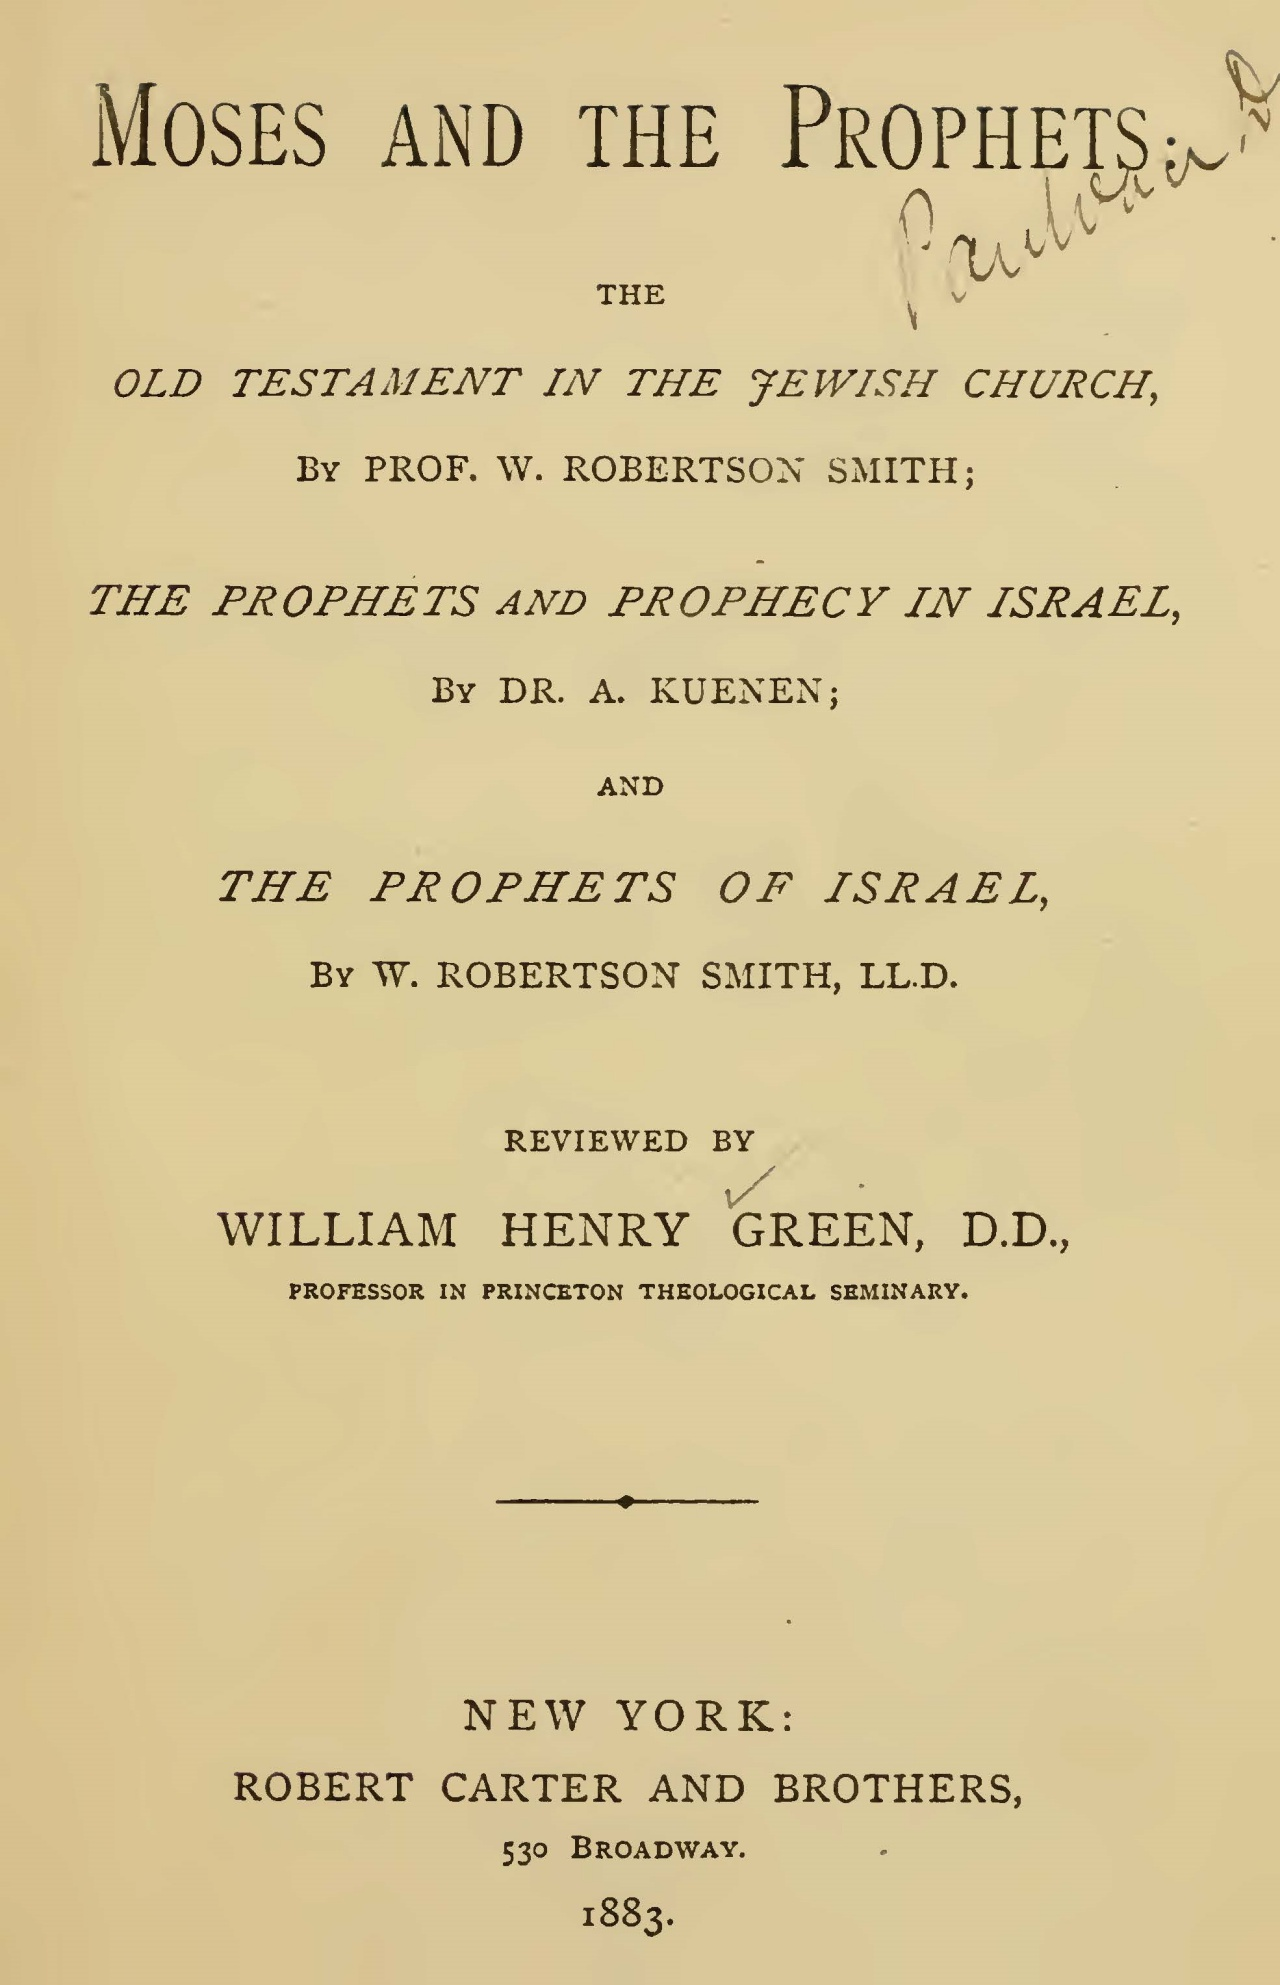 Green, William Henry, Moses and the Prophets Title Page.jpg